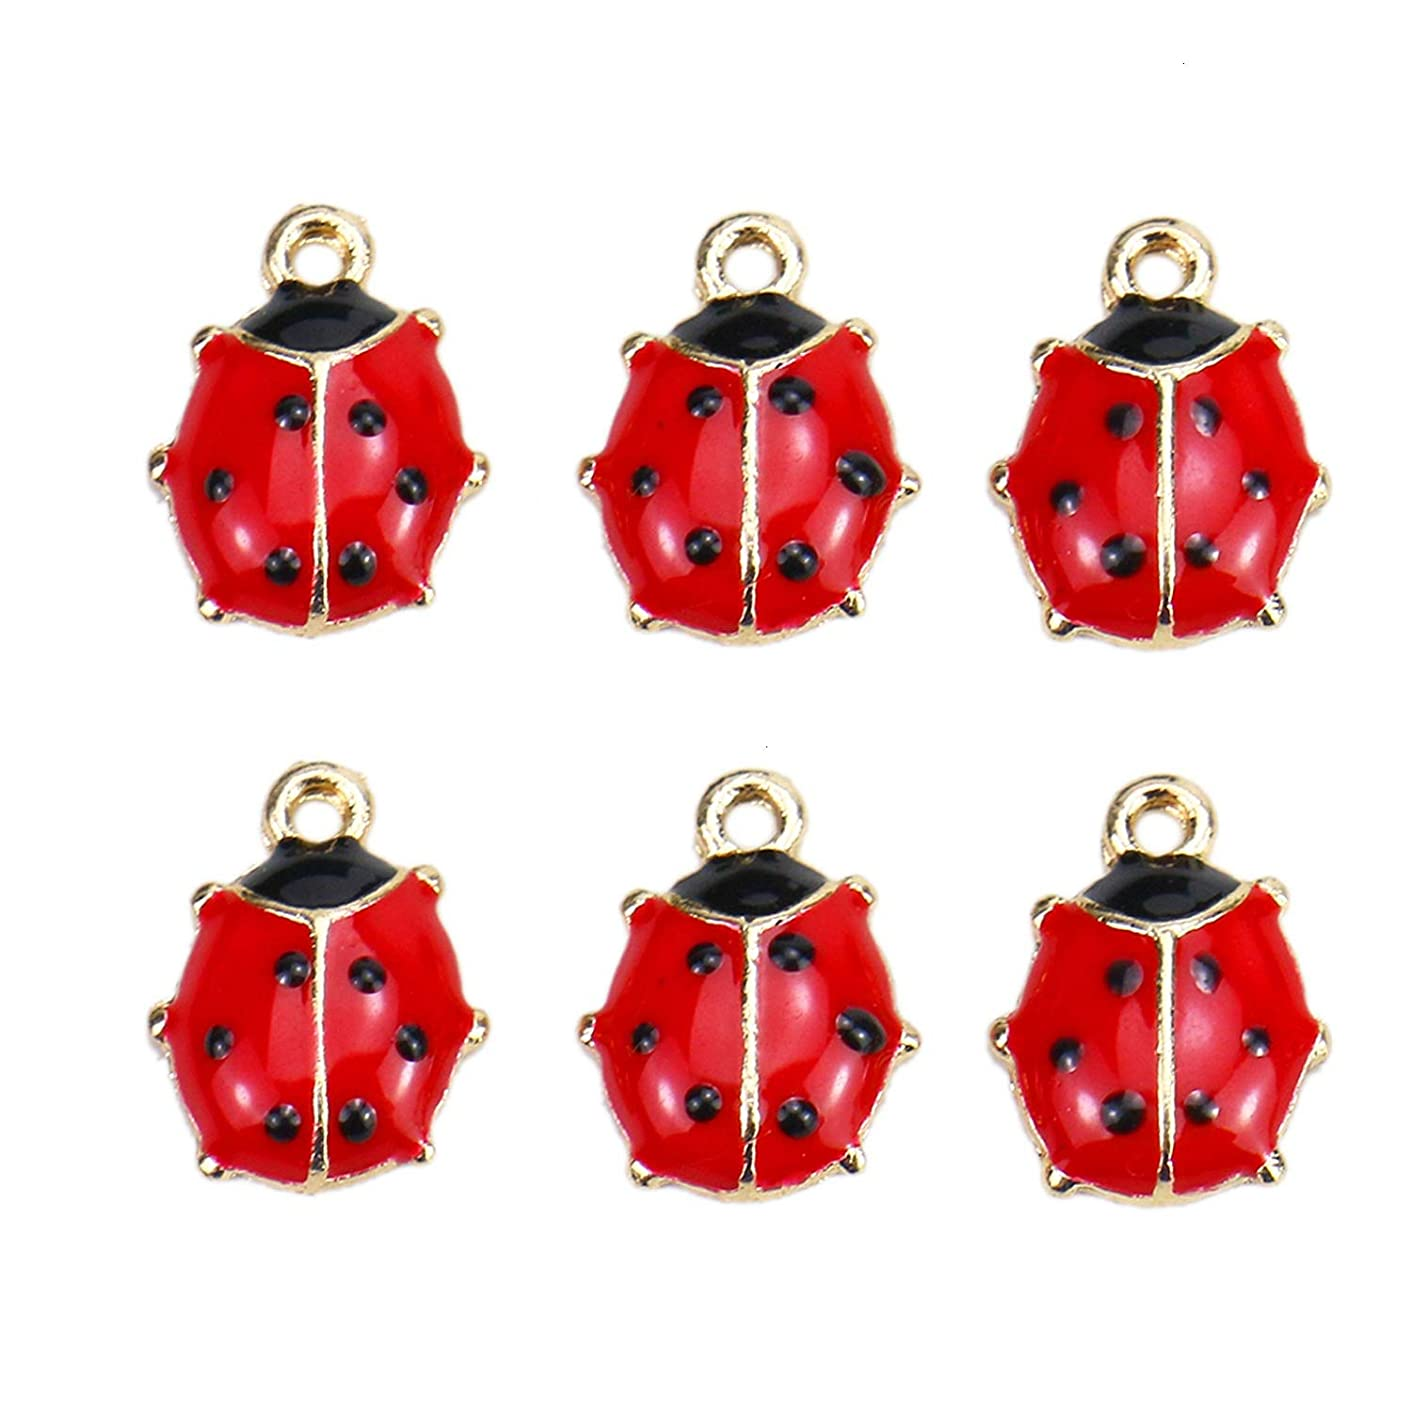 Monrocco 20 PCS Alloy Charms Pendants Small Red Beetle for Necklace Bracelet DIY Jewelry Making Accessories